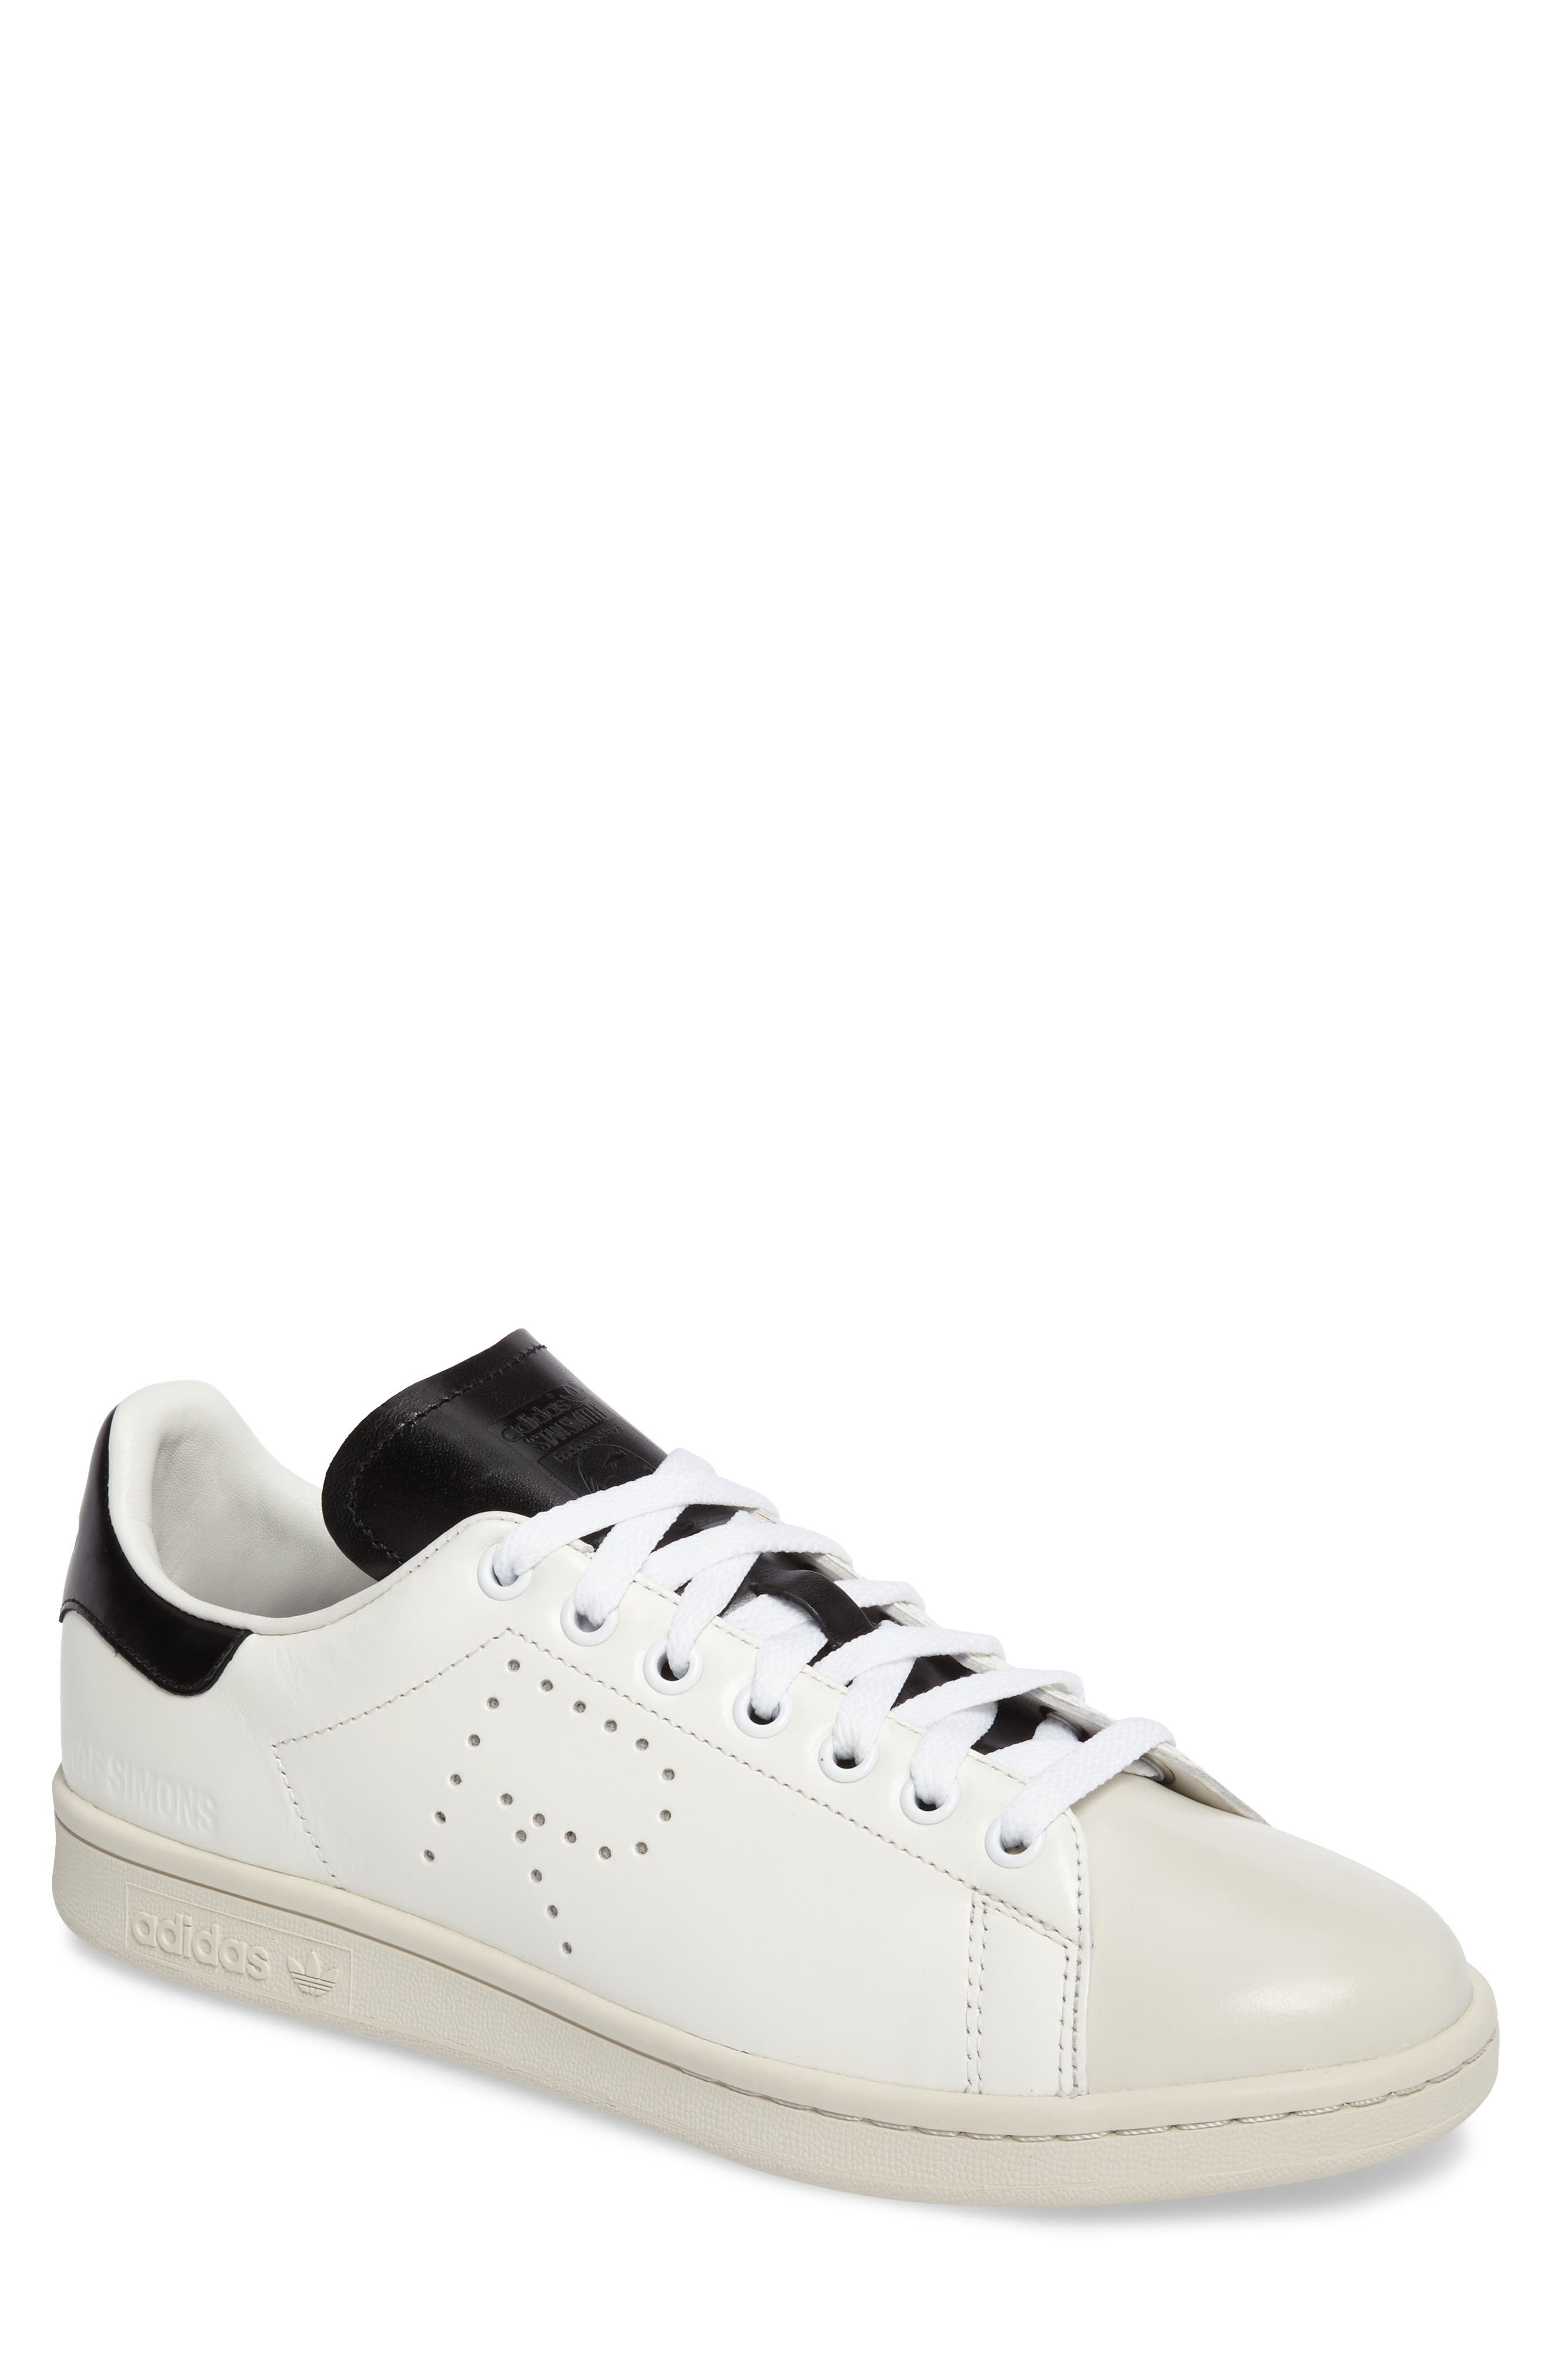 adidas by Raf Simons 'Stan Smith' Sneaker,                         Main,                         color, White